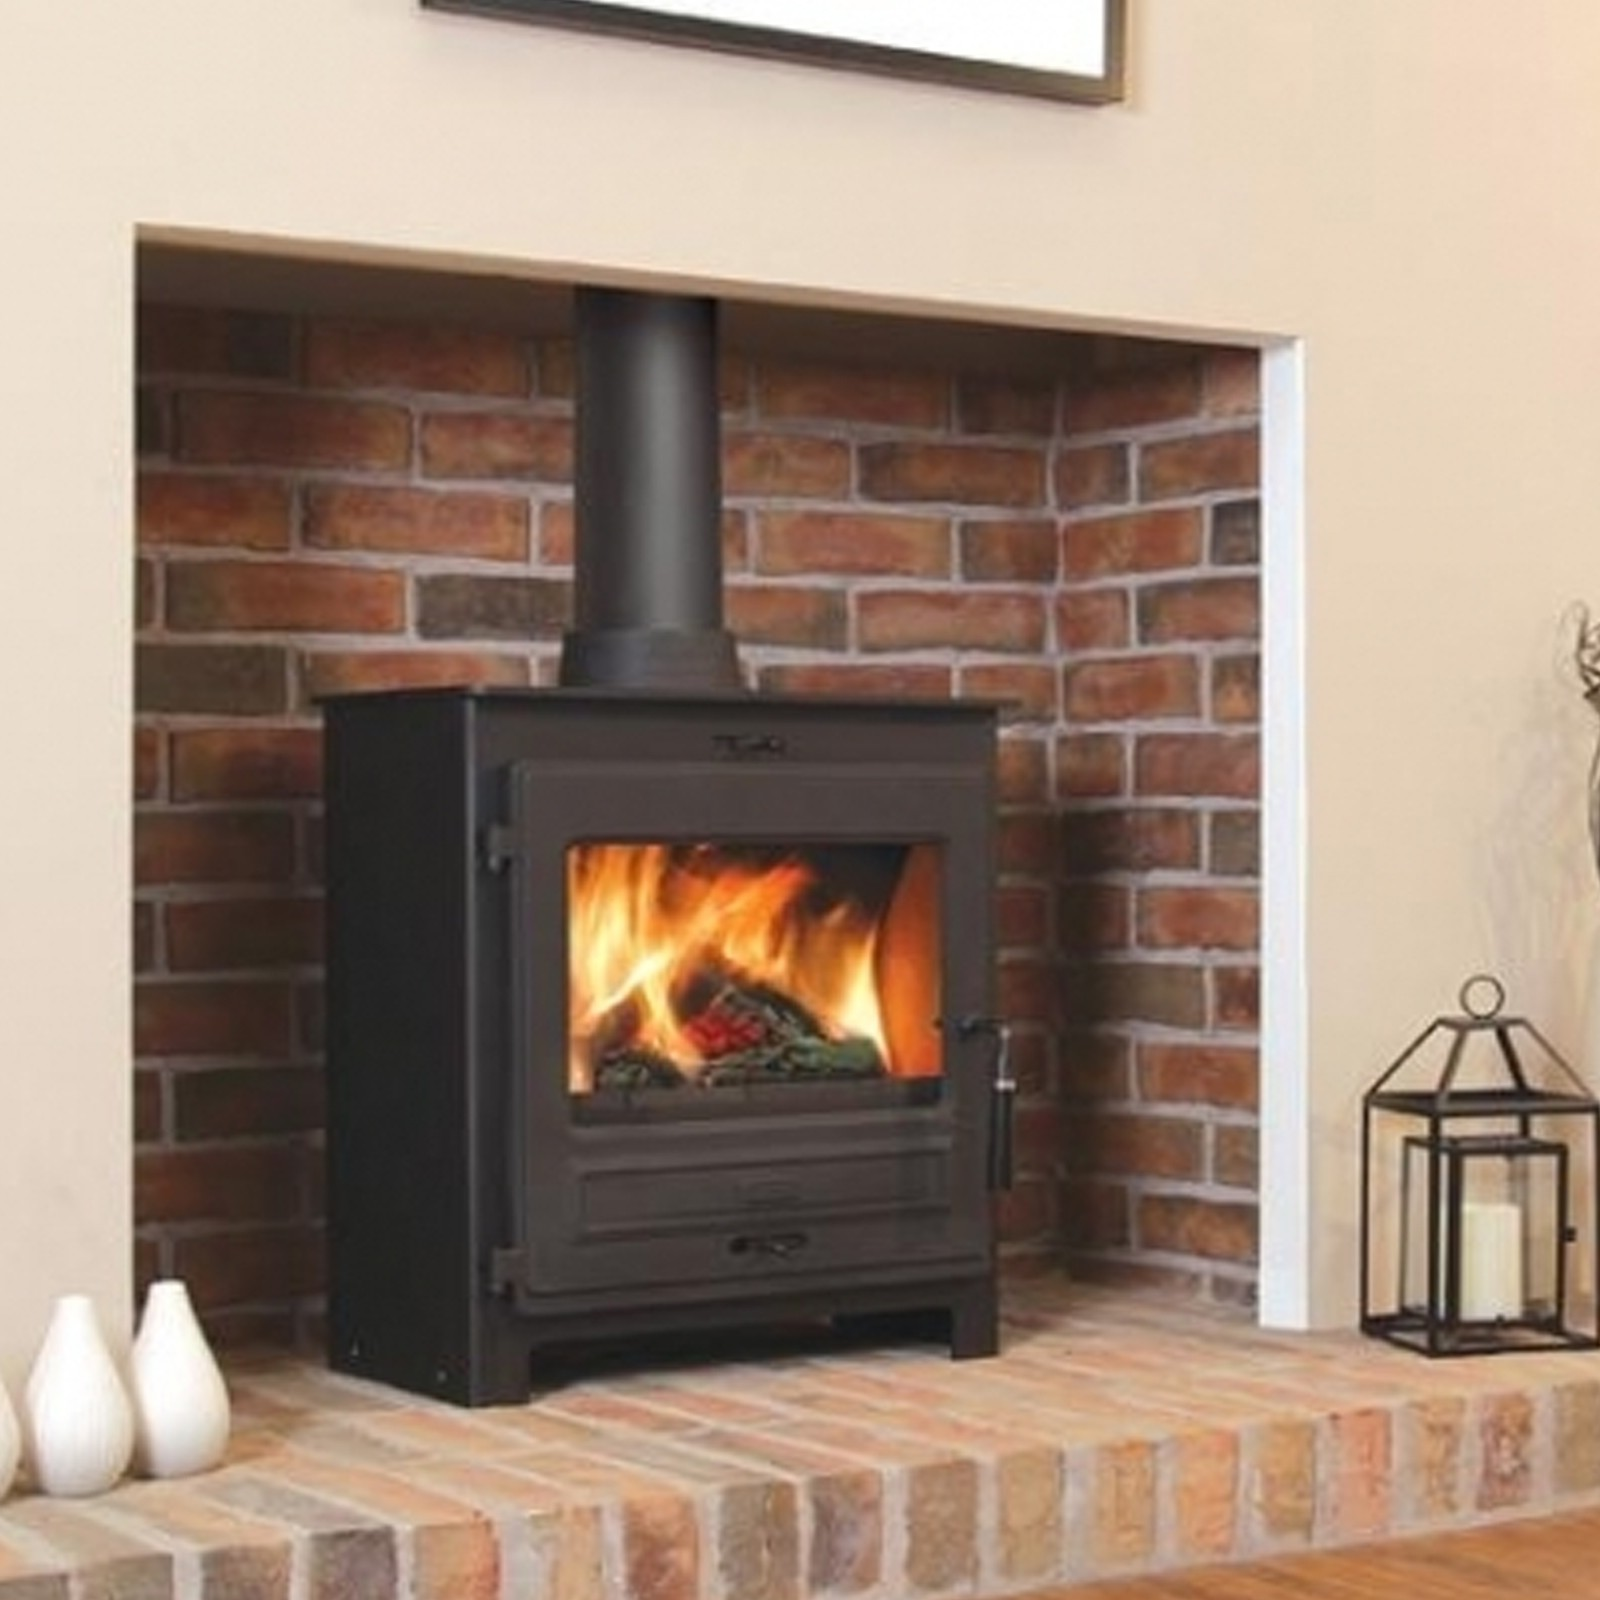 Best Prices Around Flavel No 1 Multifuel Stove Speedy